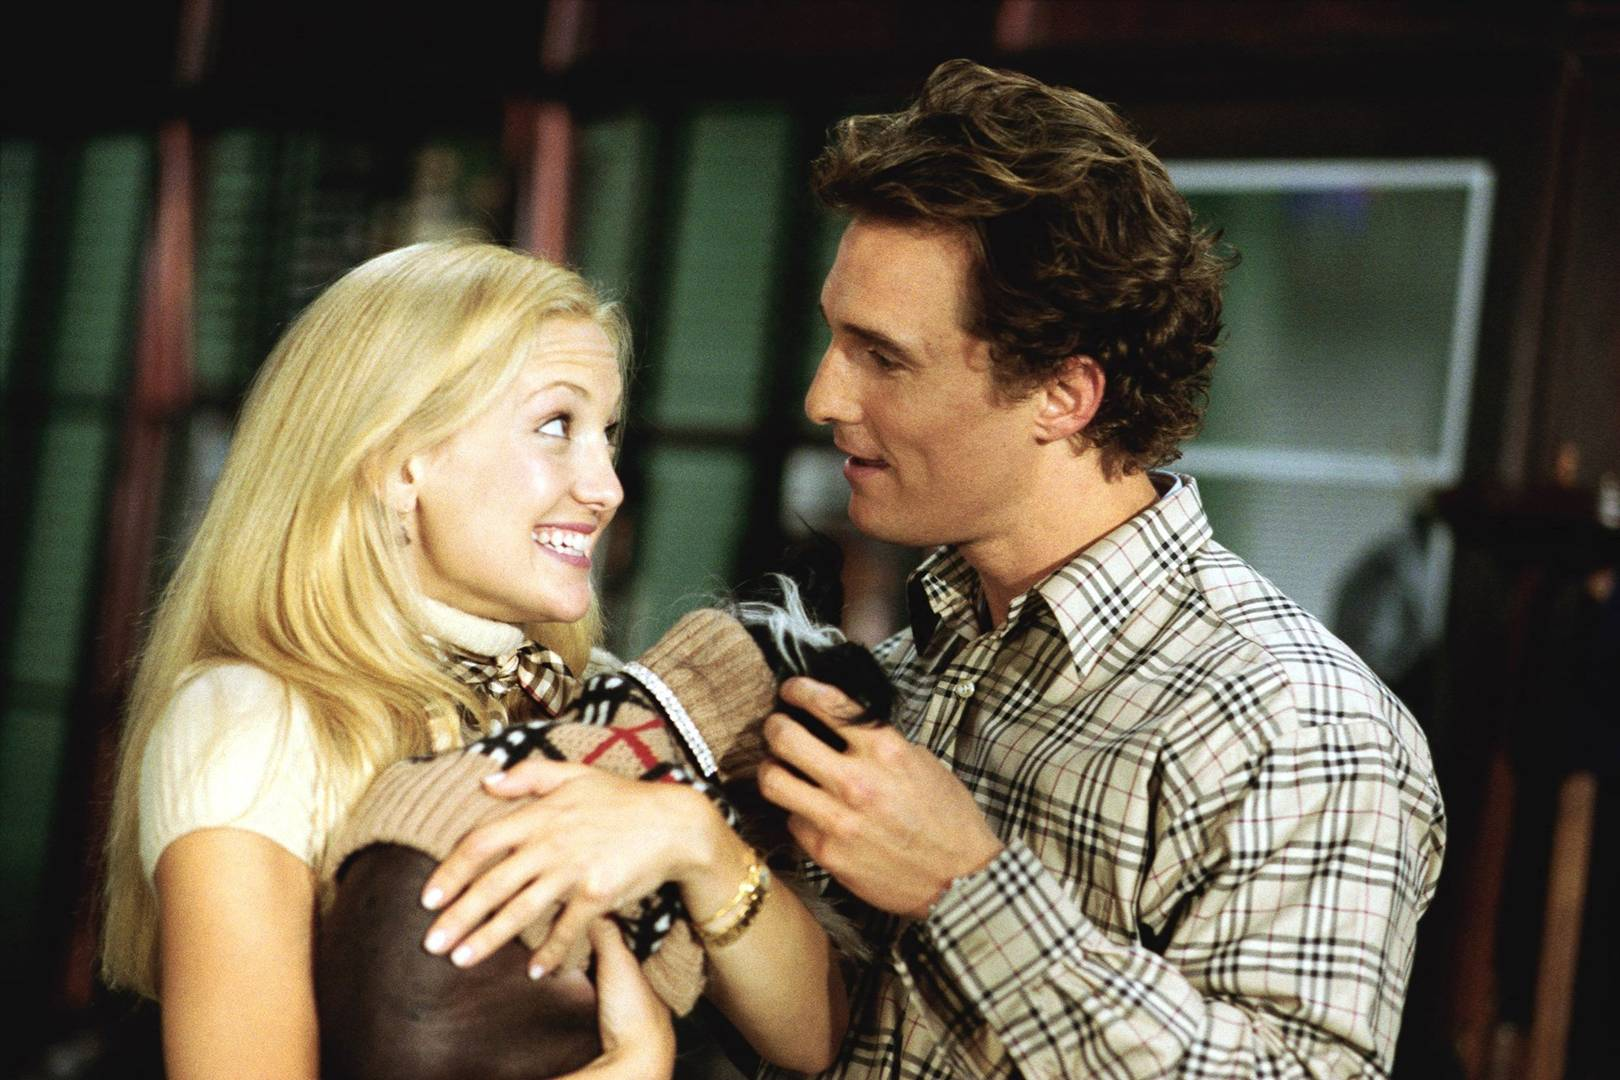 The Best Rom Coms: Romantic Comedies You'll Fall In Love